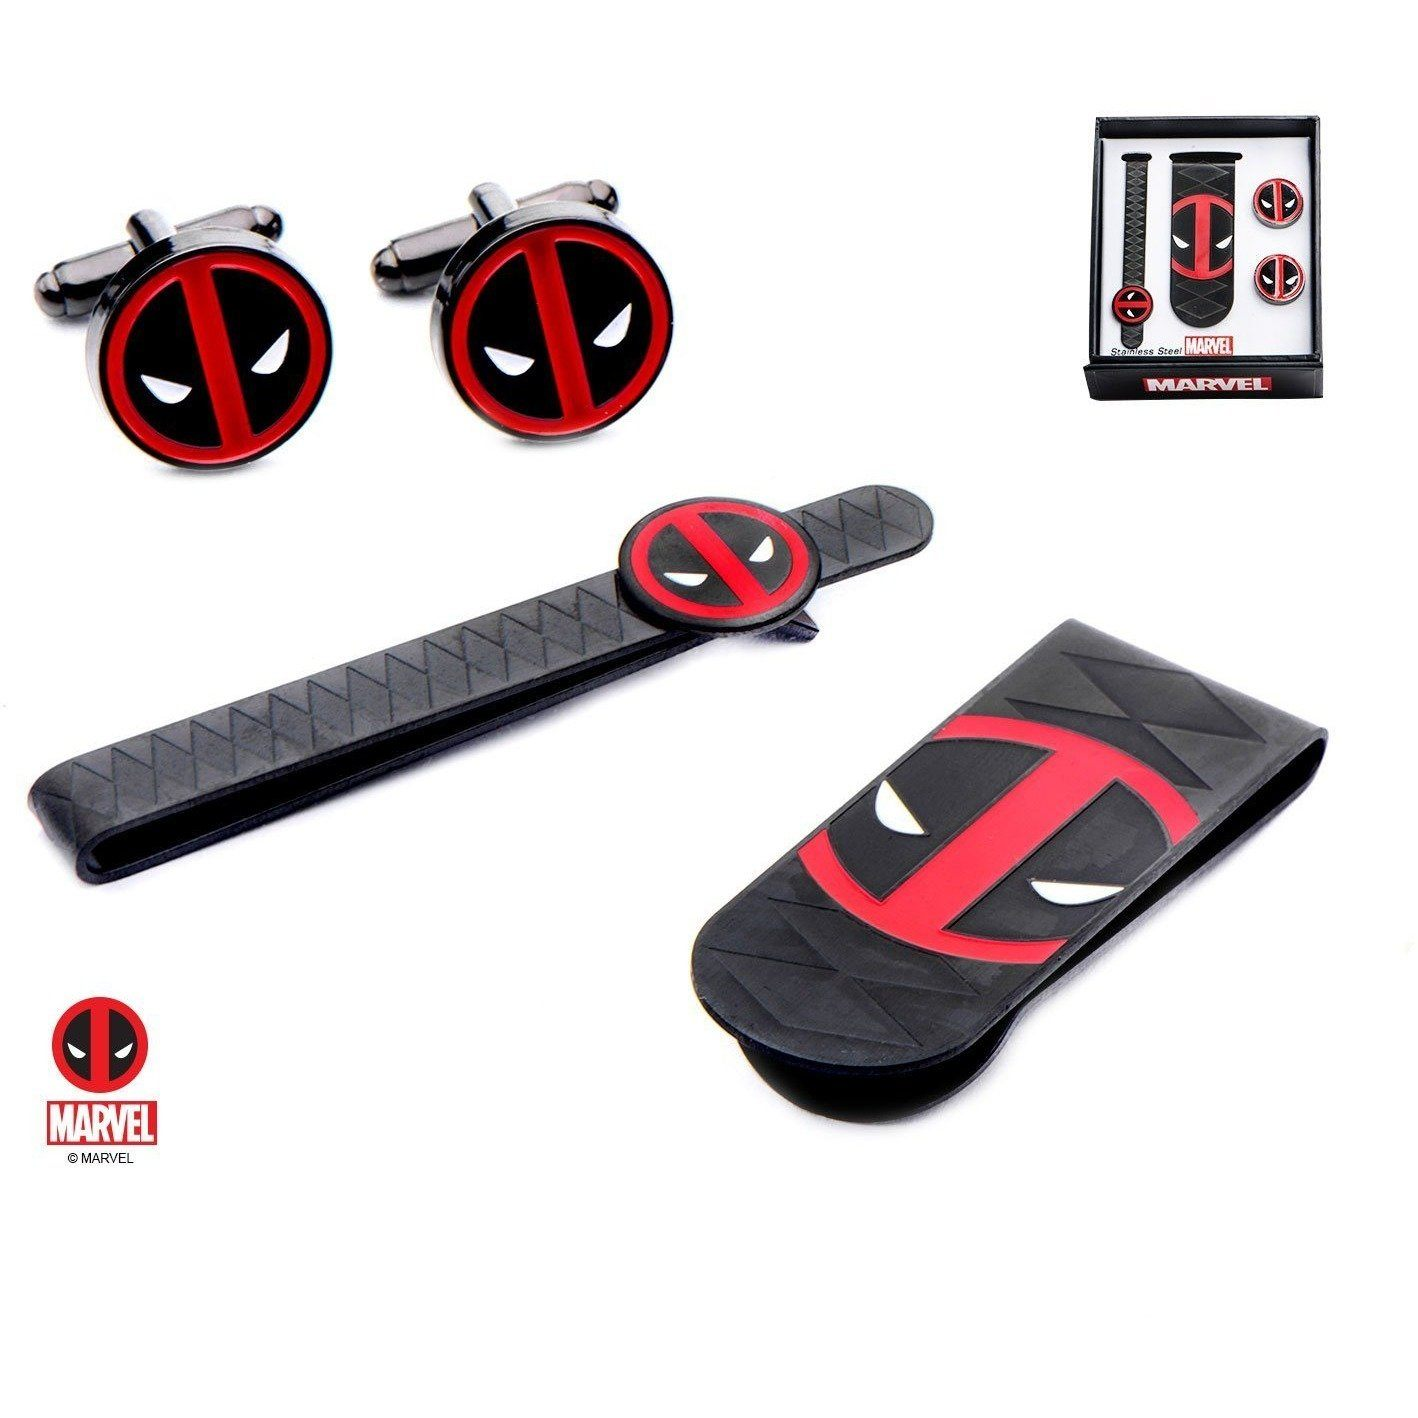 Marvel Deadpool Gift Set with Cufflinks Tie Bar and Money Clip, Novelty Cufflinks, Cuffed.com.au, CL5865, $69.00